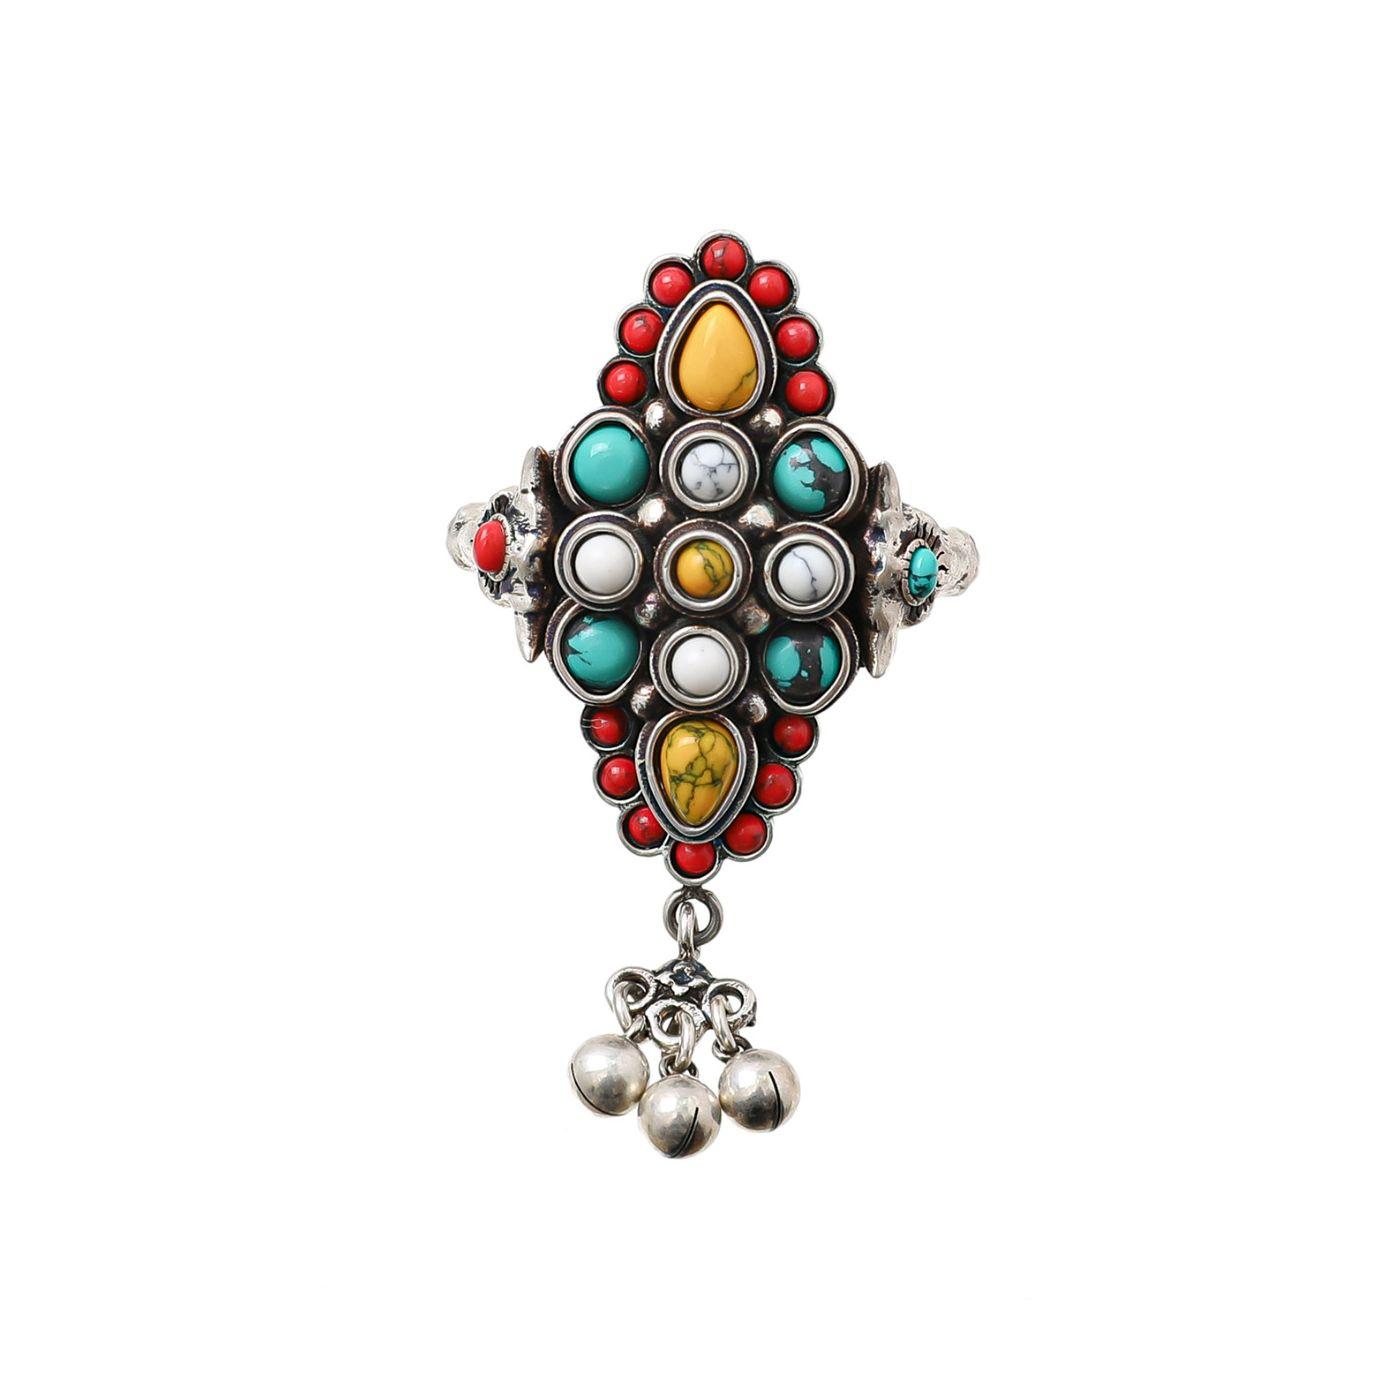 Gucci Silver / Multicolor Beads Anger Forest Ring 14